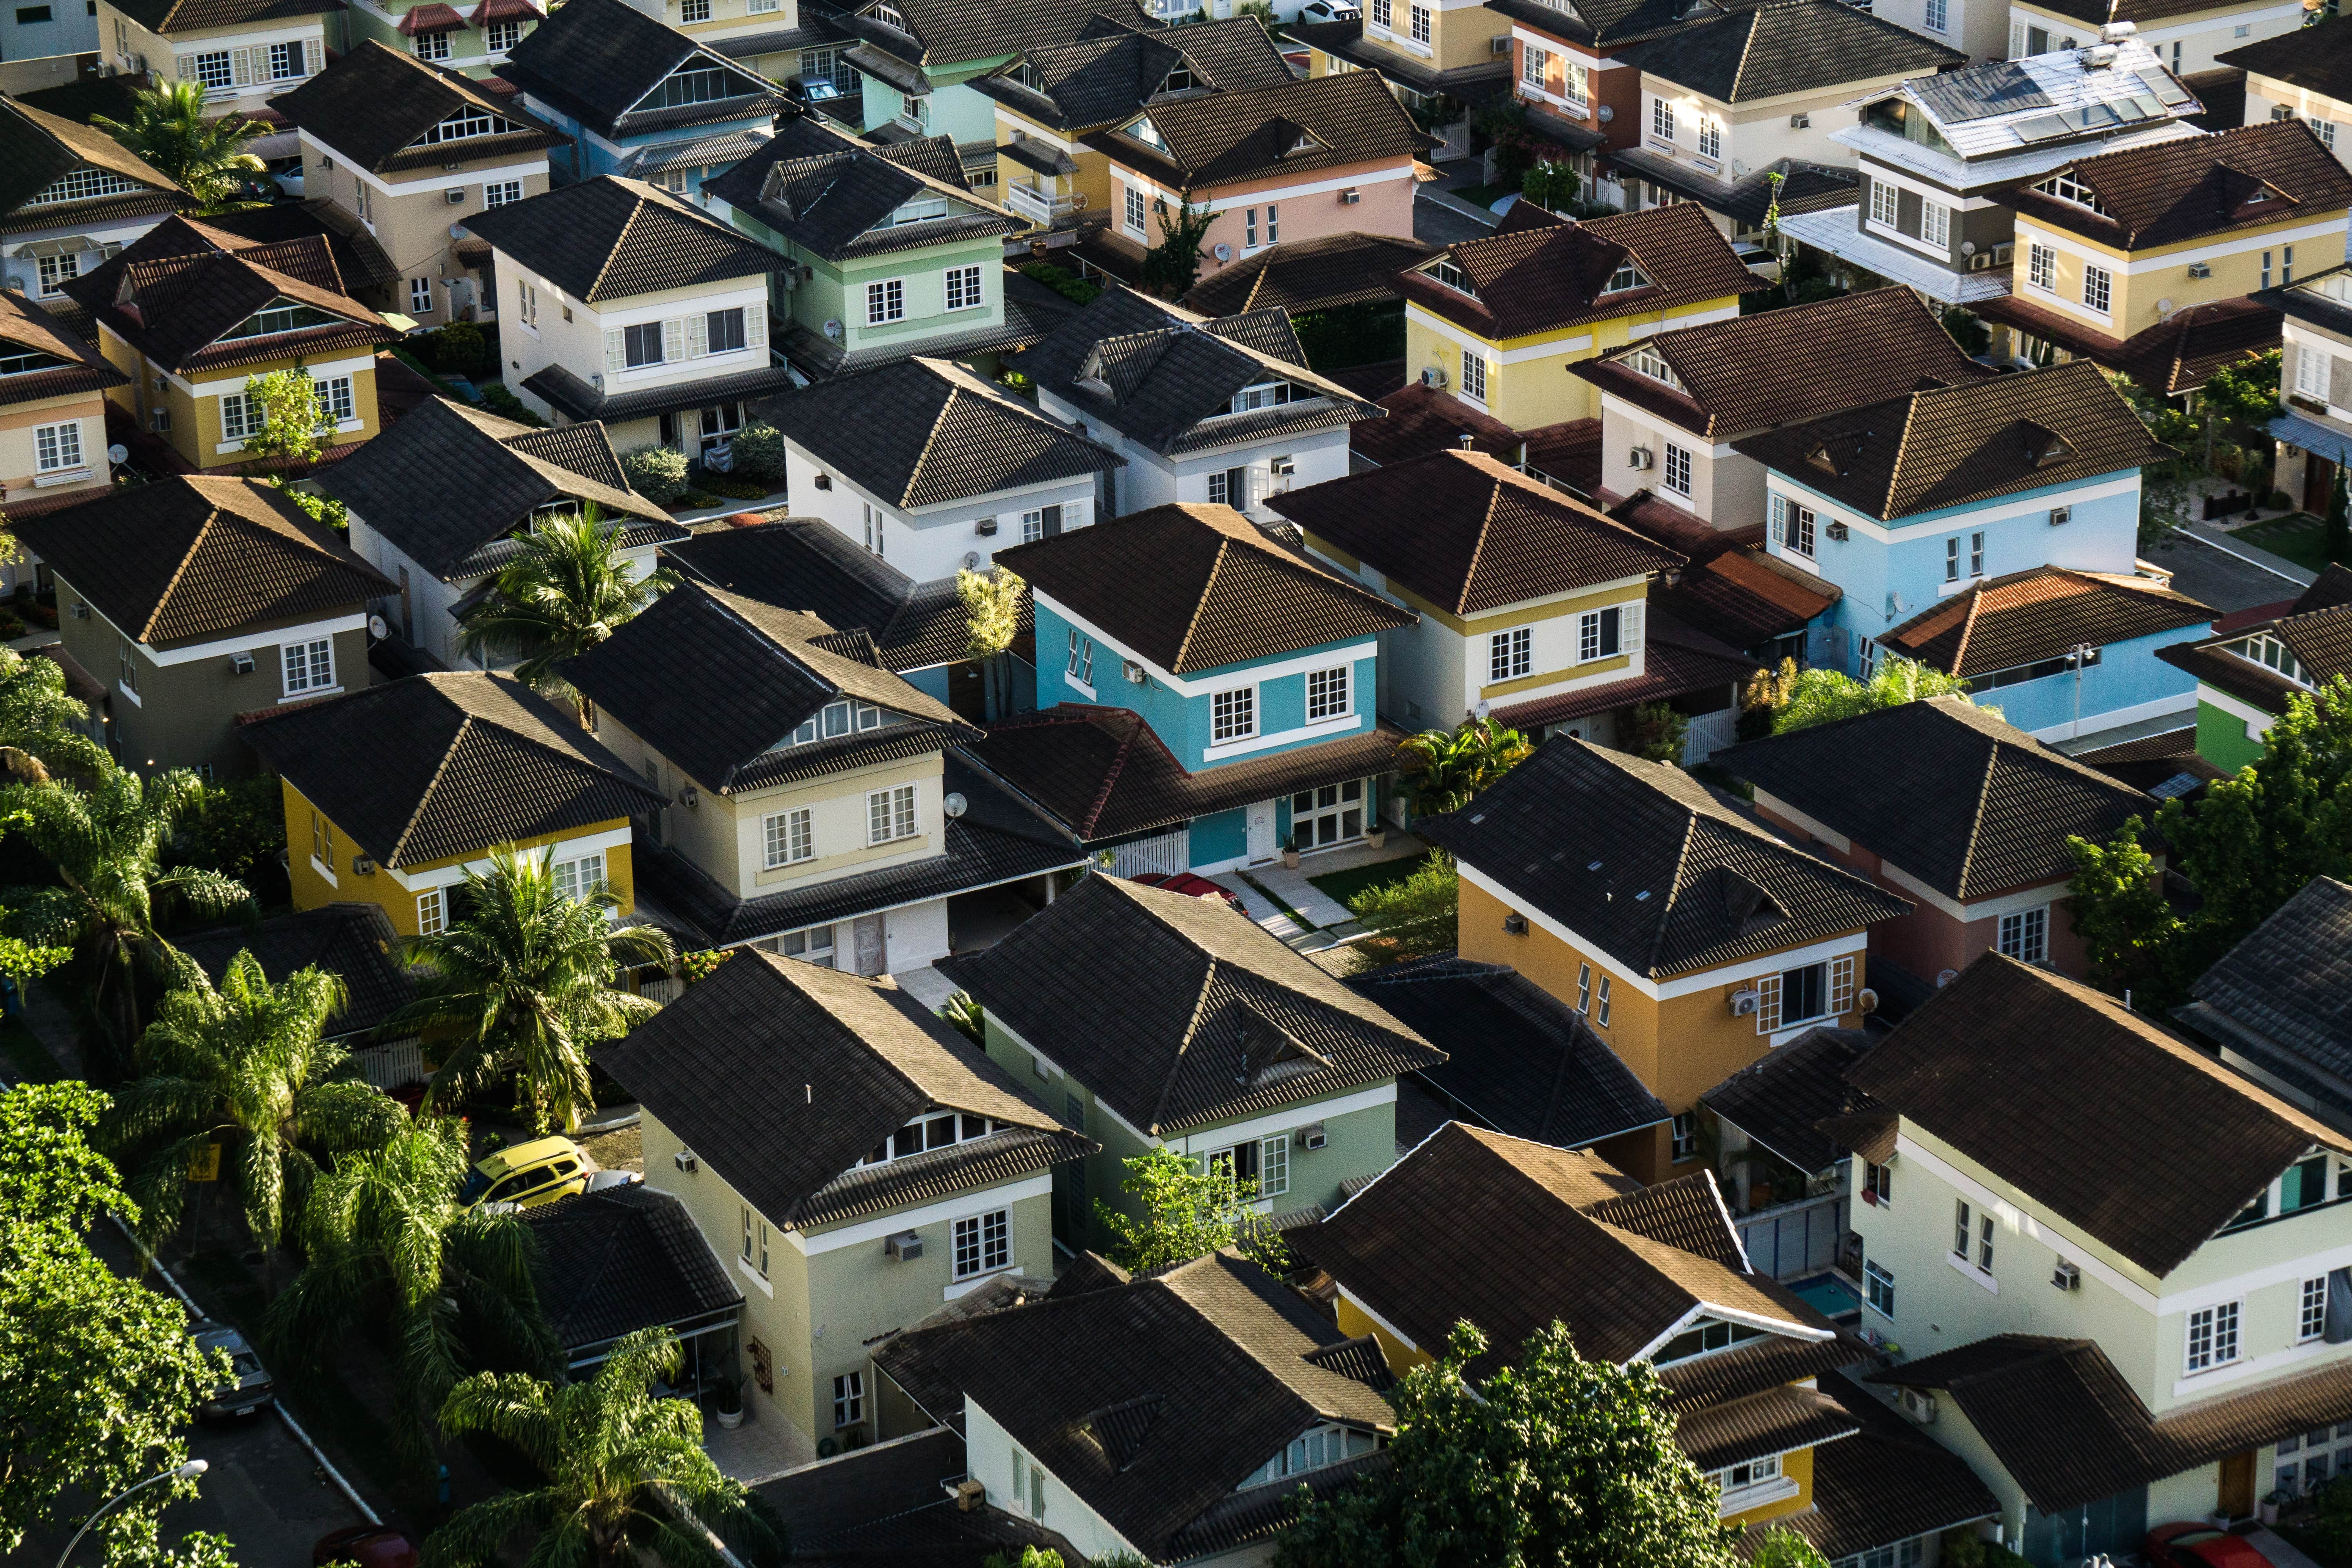 aerial view of houses - fix and flip